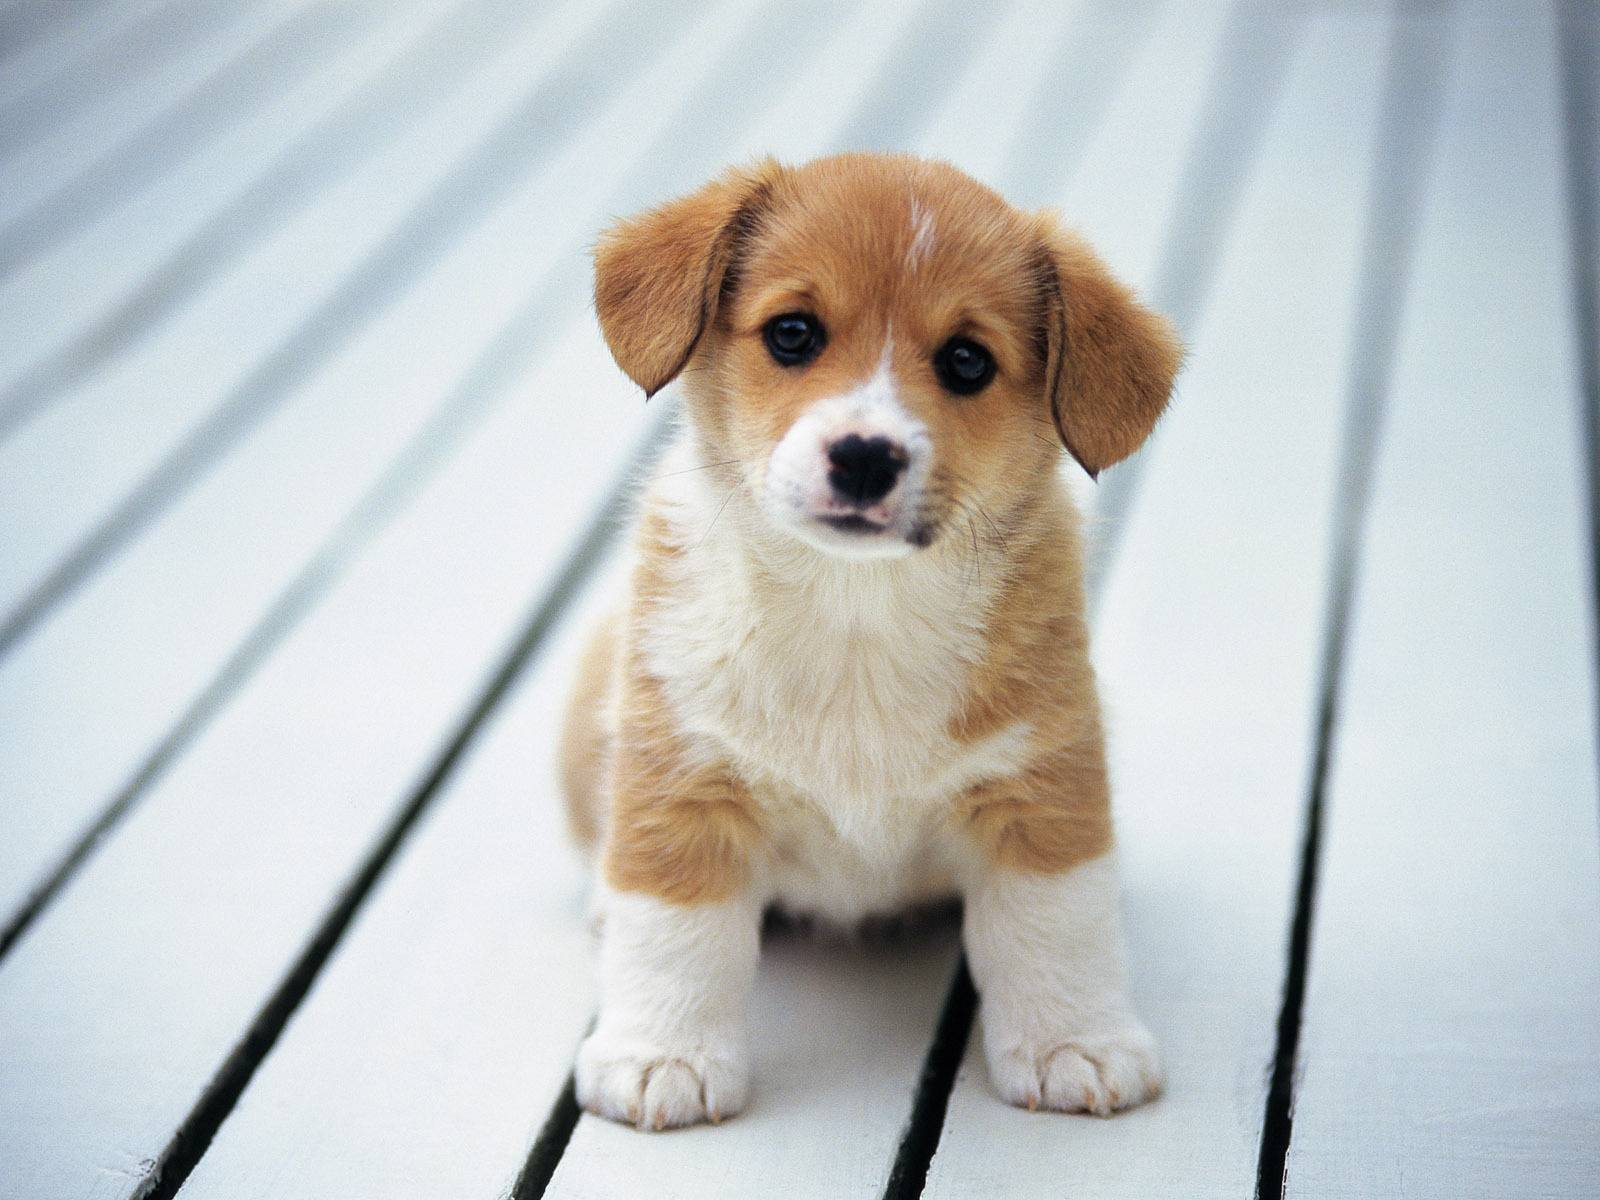 Cute Puppy   Puppies Wallpaper 1600x1200